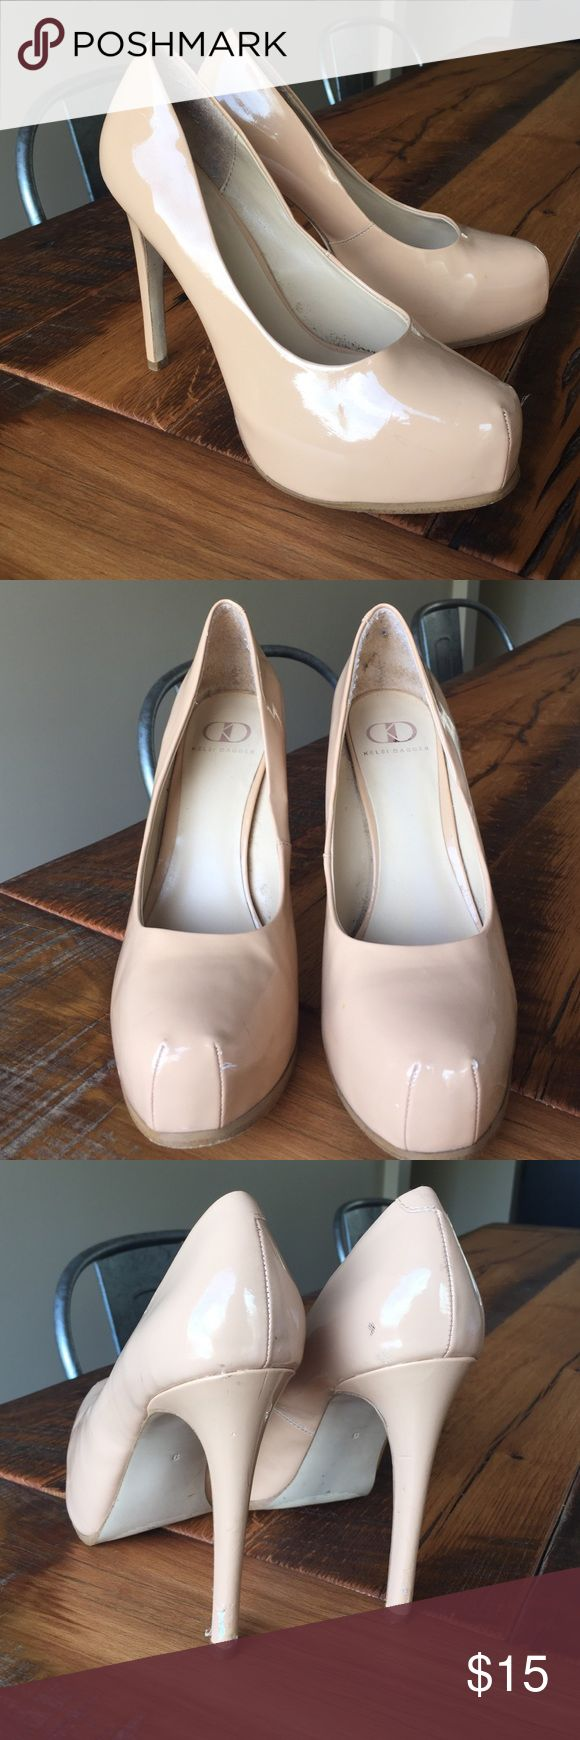 Kelsi Dagger Nude Patent Platform Pumps Heels Sz 9 These are used nude patent Kelsi Dagger platform pumps / heels in a Size 9. There are some scuffs and scrapes (reflected in price). From a smoke and pet free home. Bundle listings together to save on shipping. Kelsi Dagger Shoes Heels